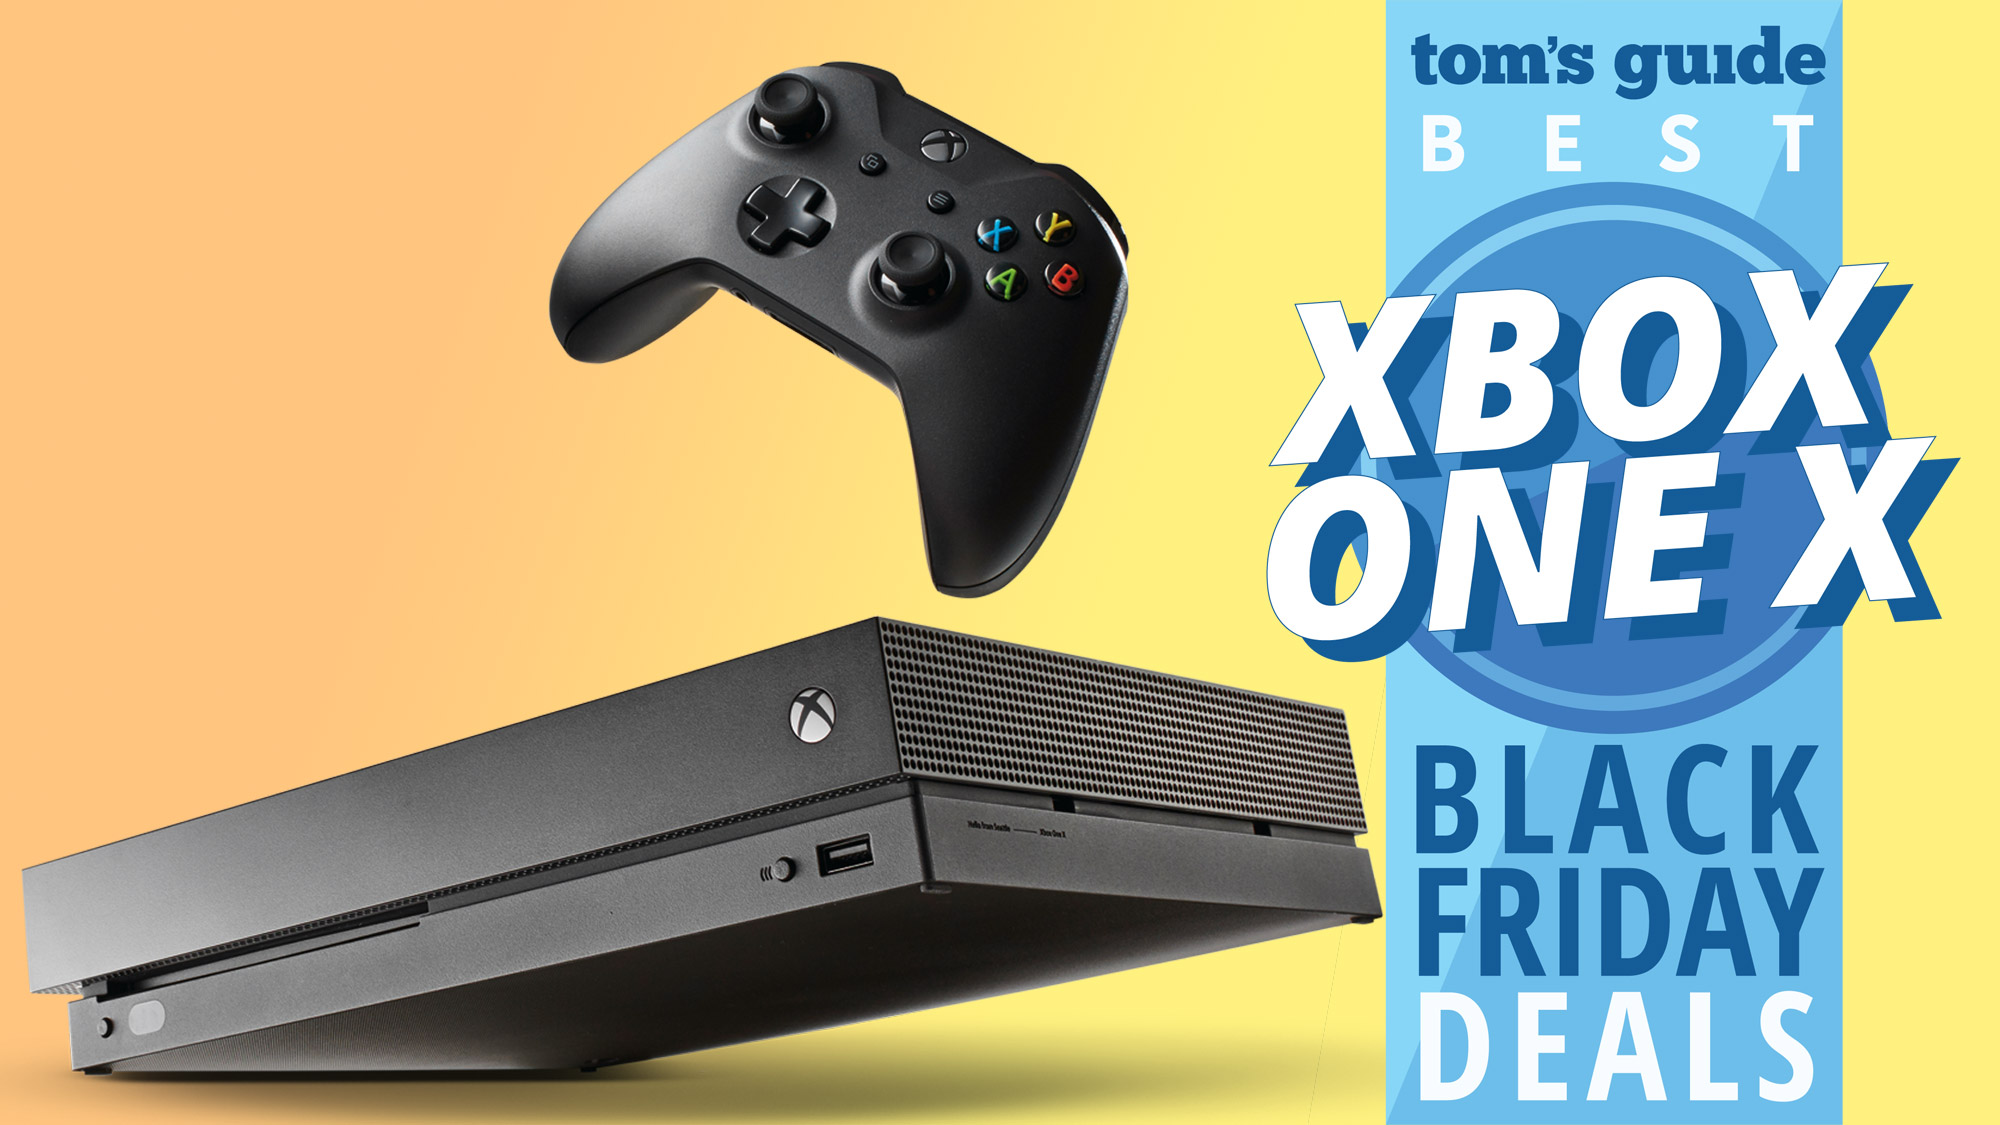 Best Black Friday Xbox One X Deals Tom S Guide